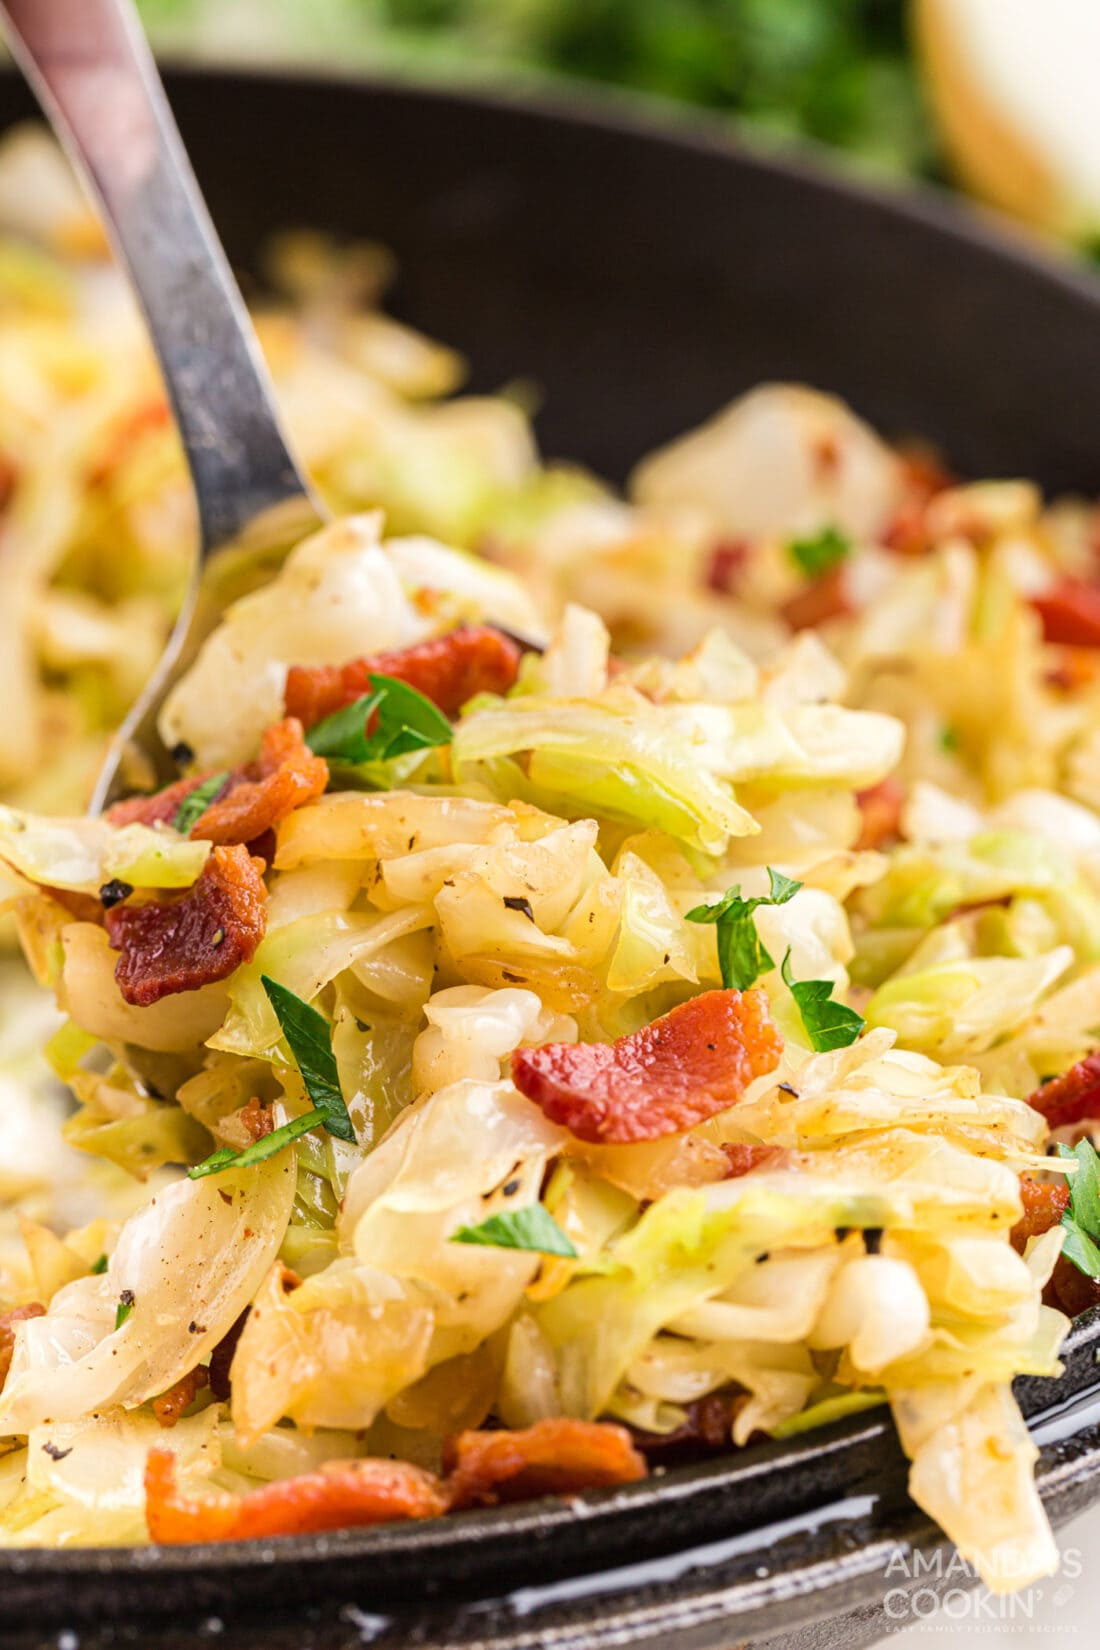 spooning out Fried Cabbage